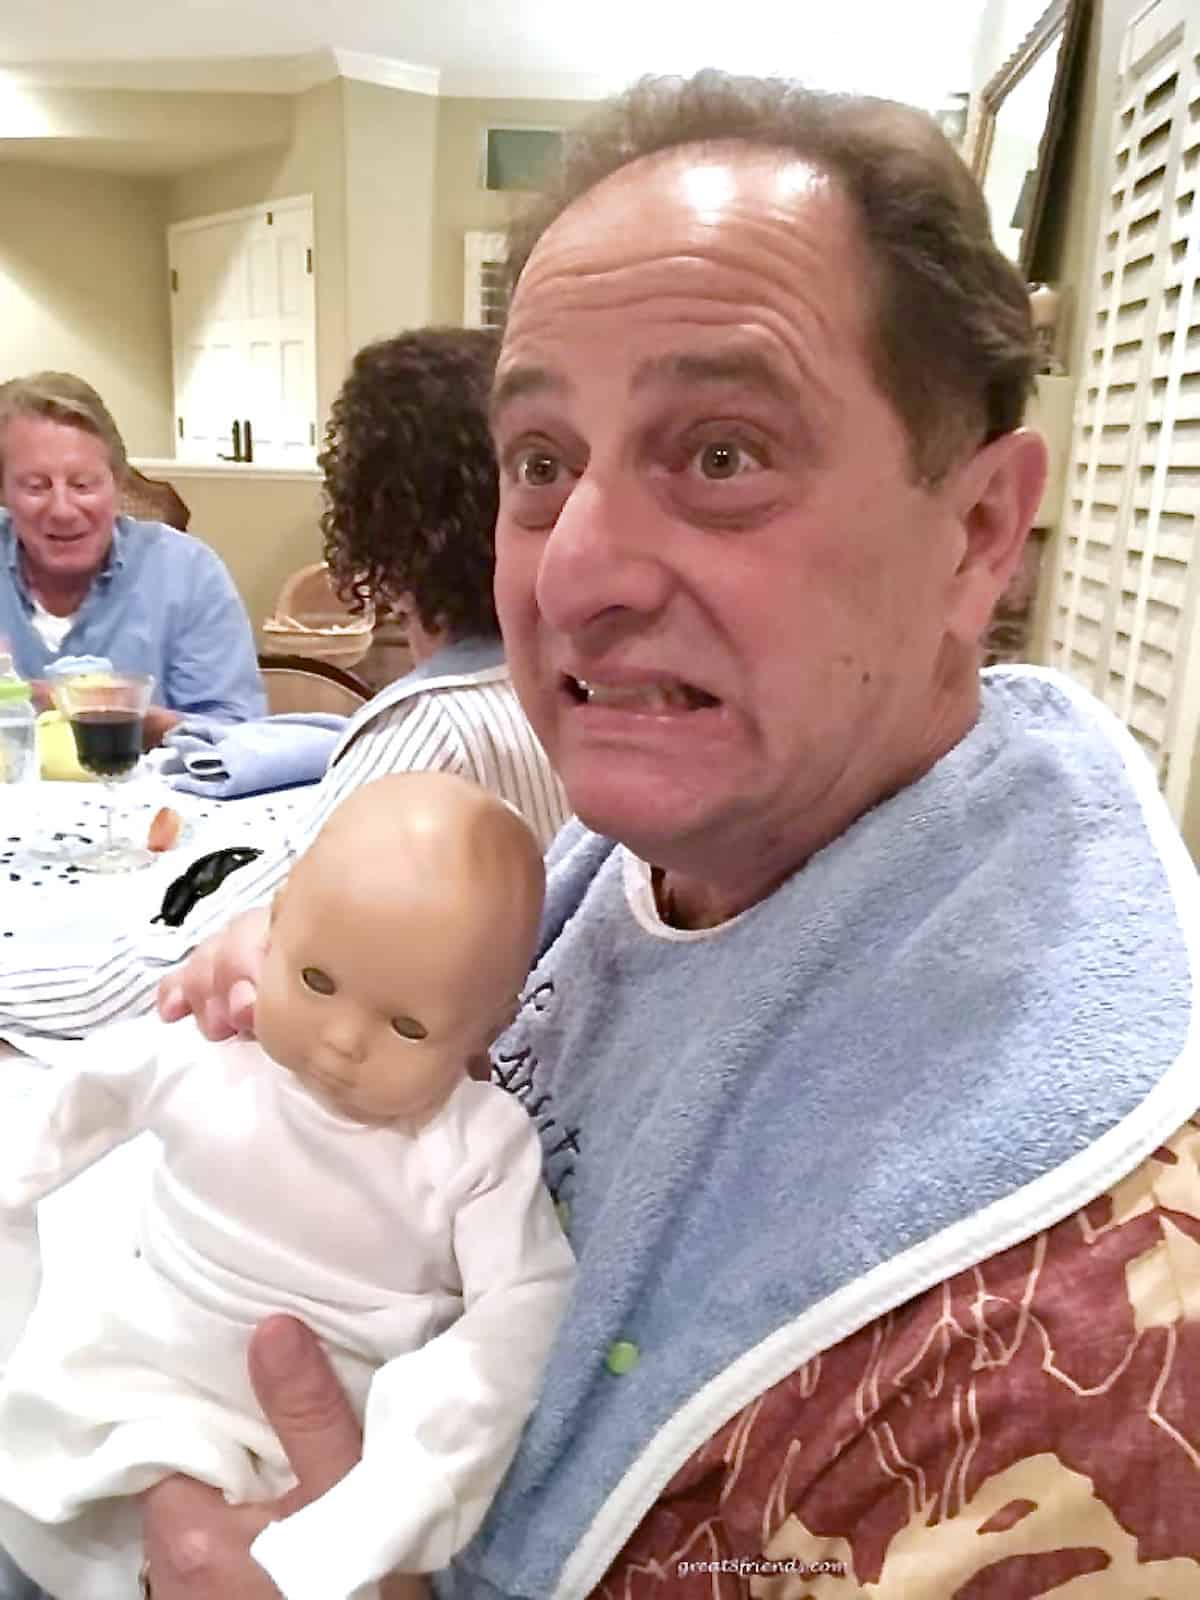 A man holding a baby doll.